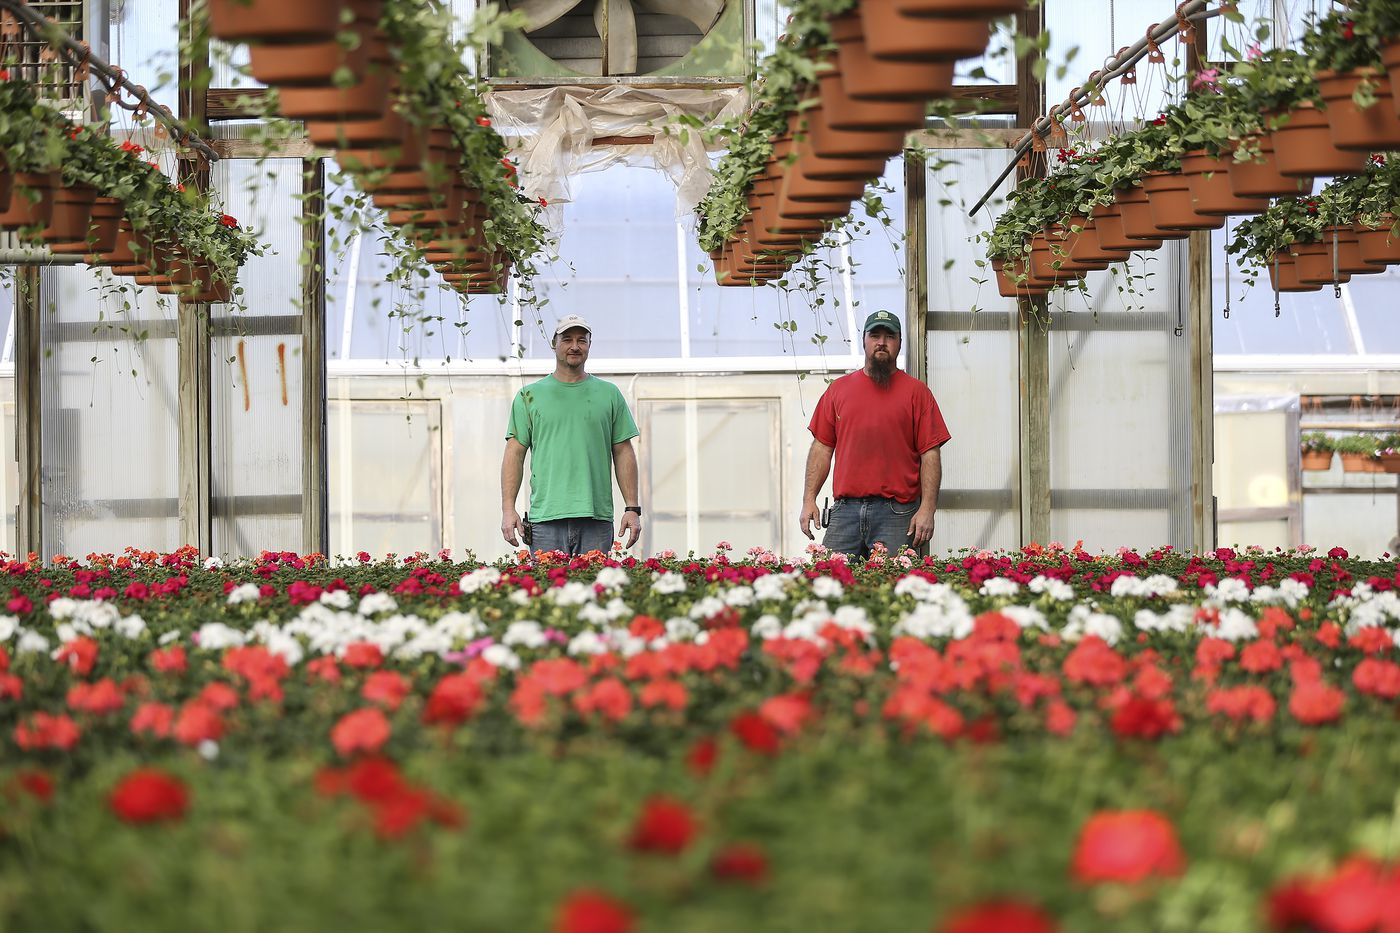 Possibility of Prolonged Shutdown Has Local Garden Centers Fearing The Worst